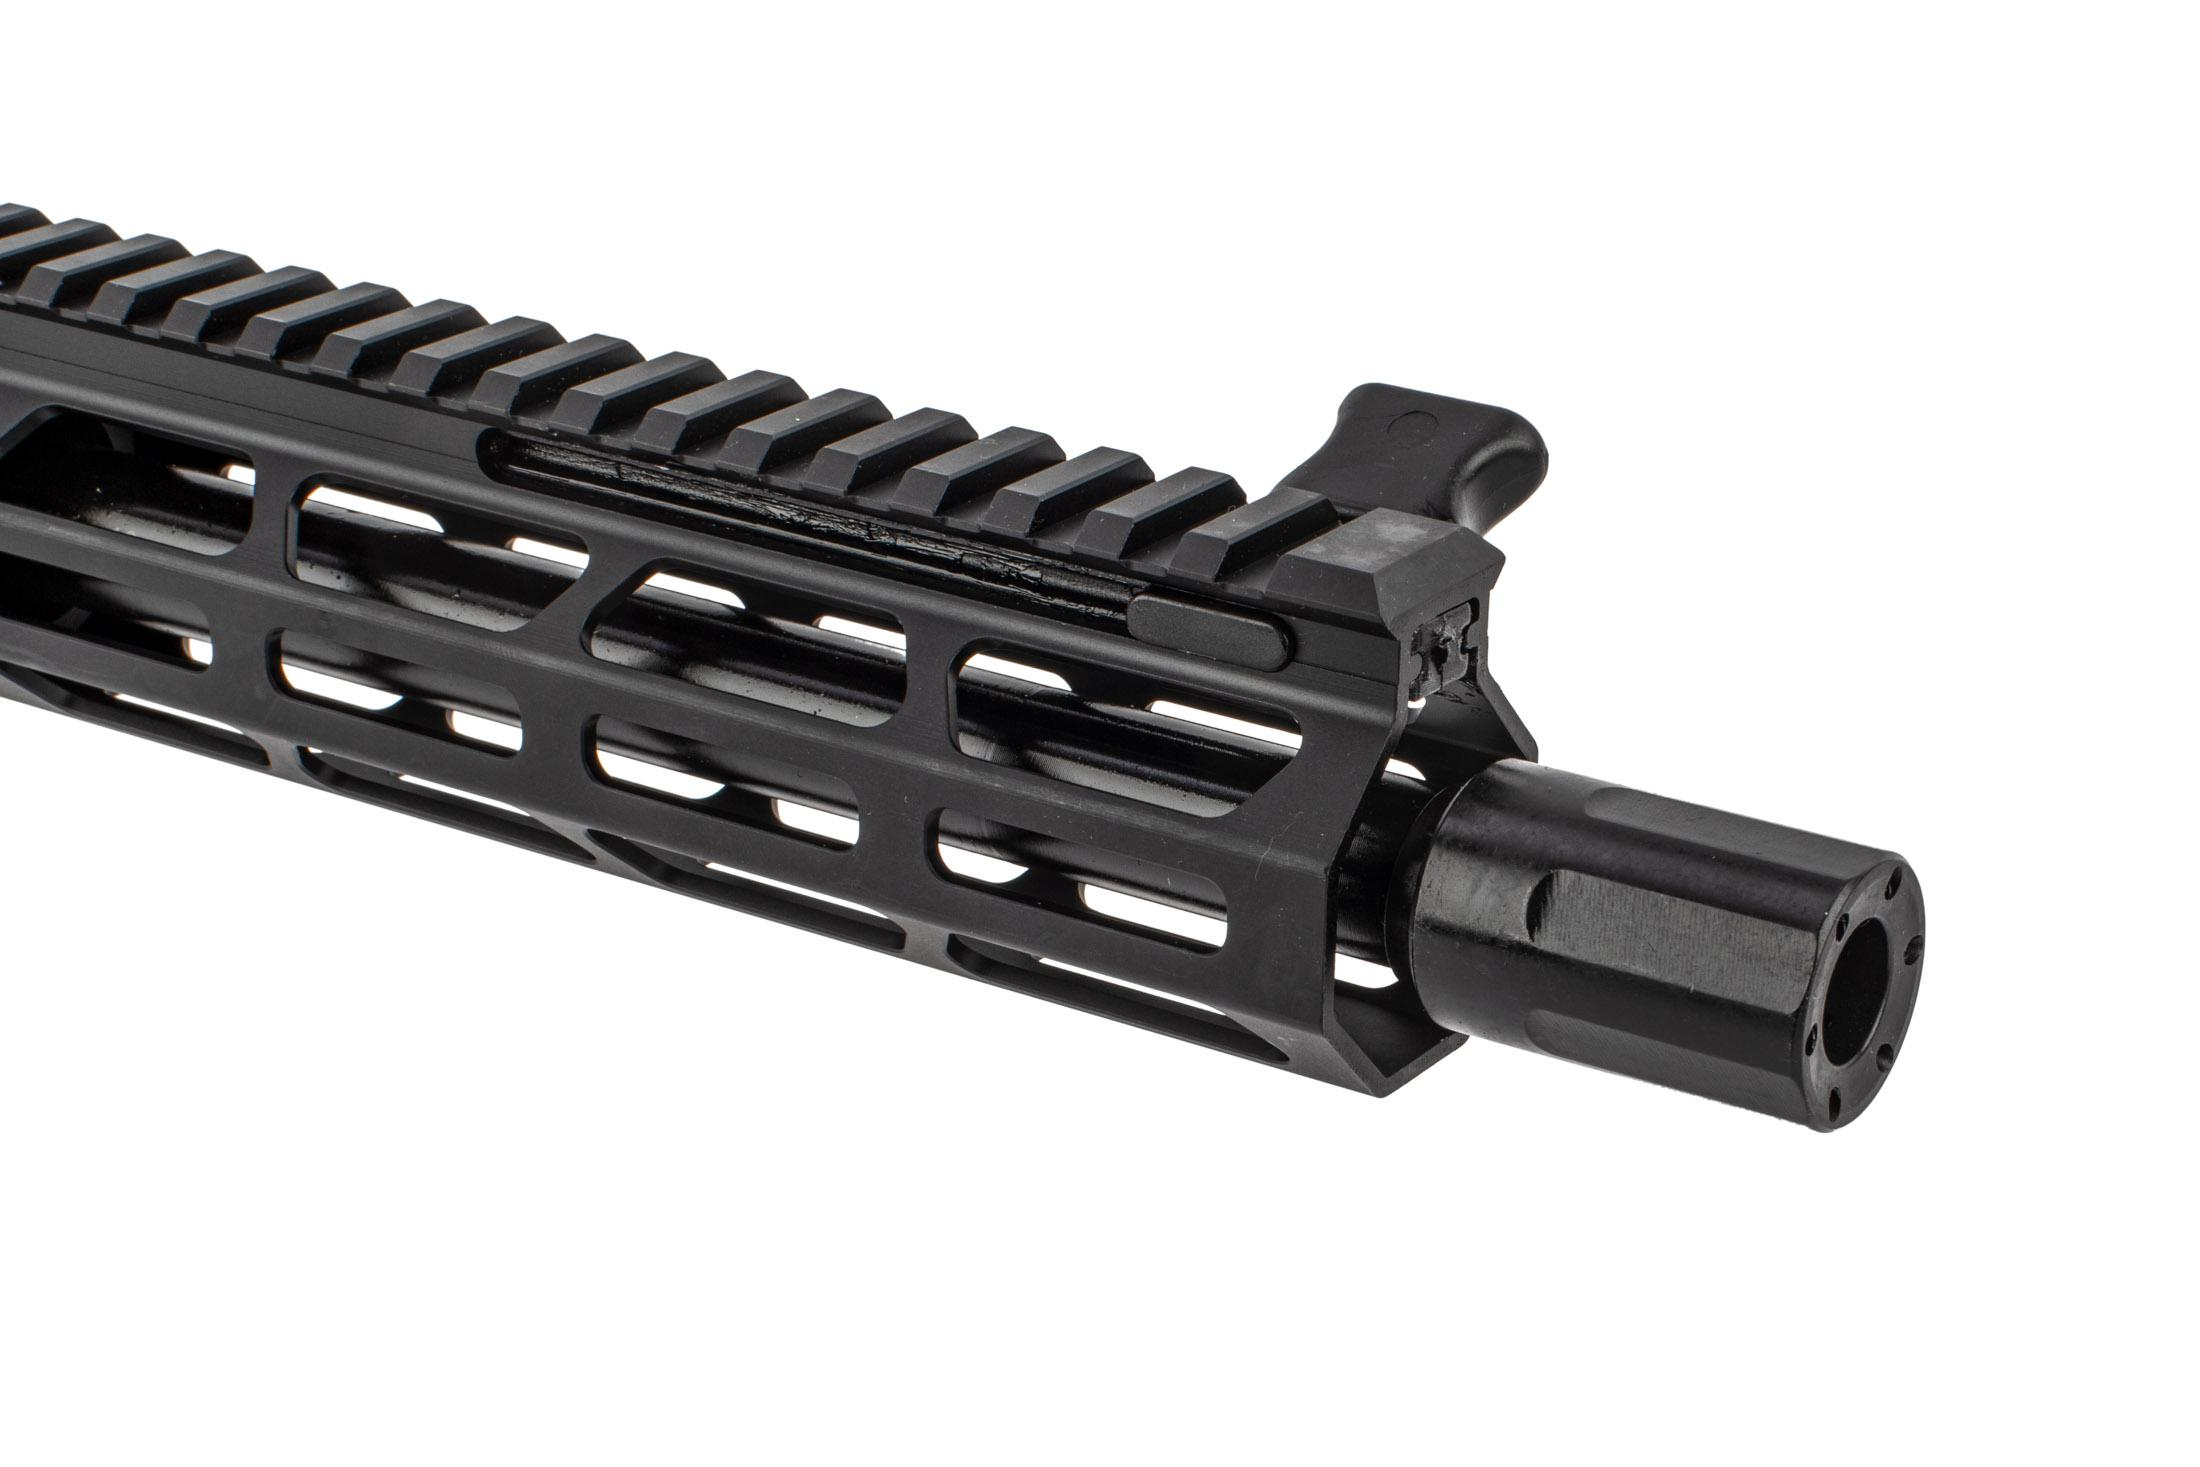 "Foxtrot Mike Products 8.5 9x19mm 1:10 Complete Upper - 8"" M-LOK Rail - Blast Diffuser"